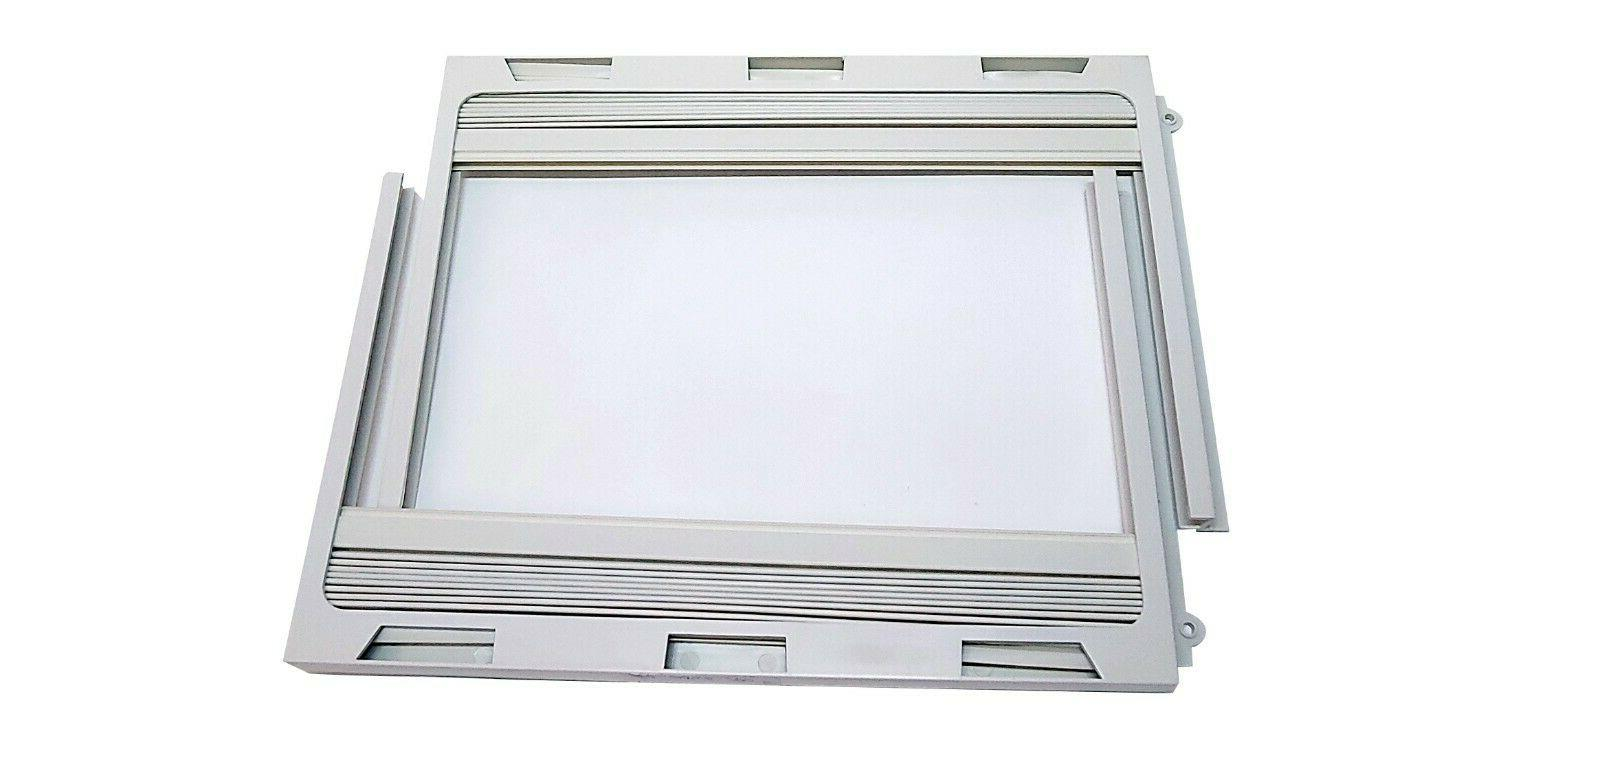 1 pair window air conditioner frames